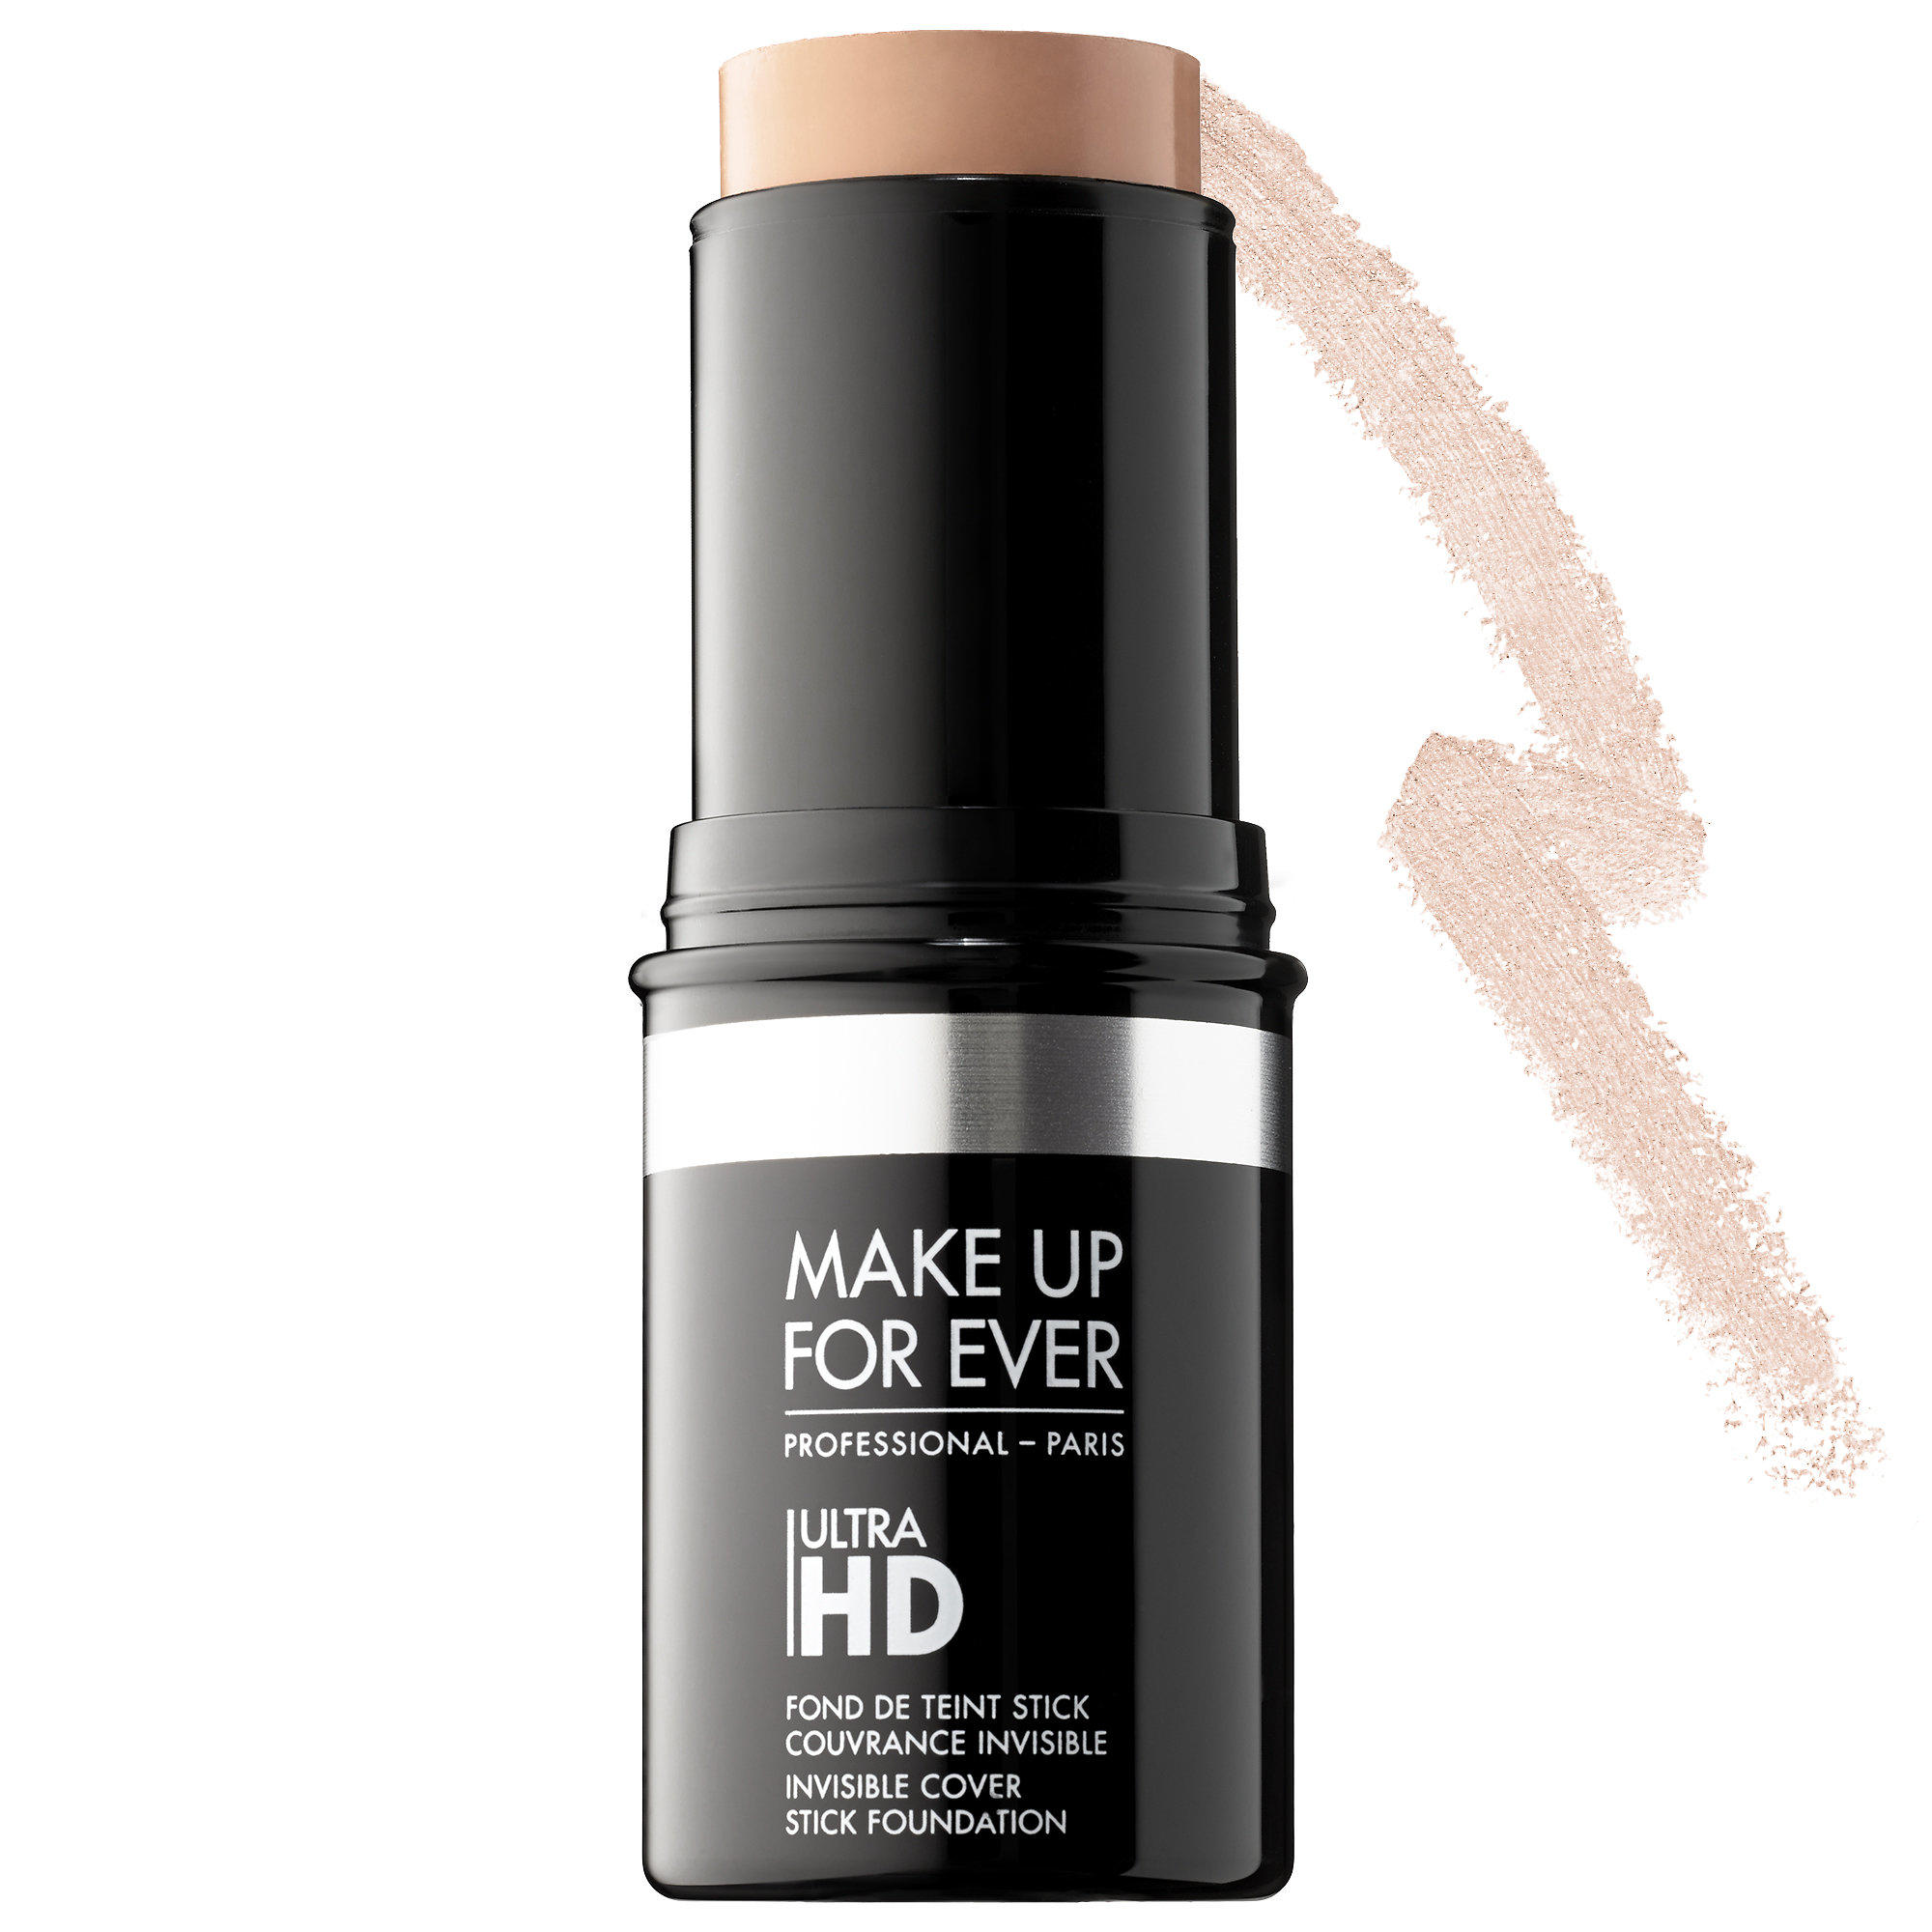 Makeup Forever Ultra HD Invisible Cover Stick Foundation 115 = R230